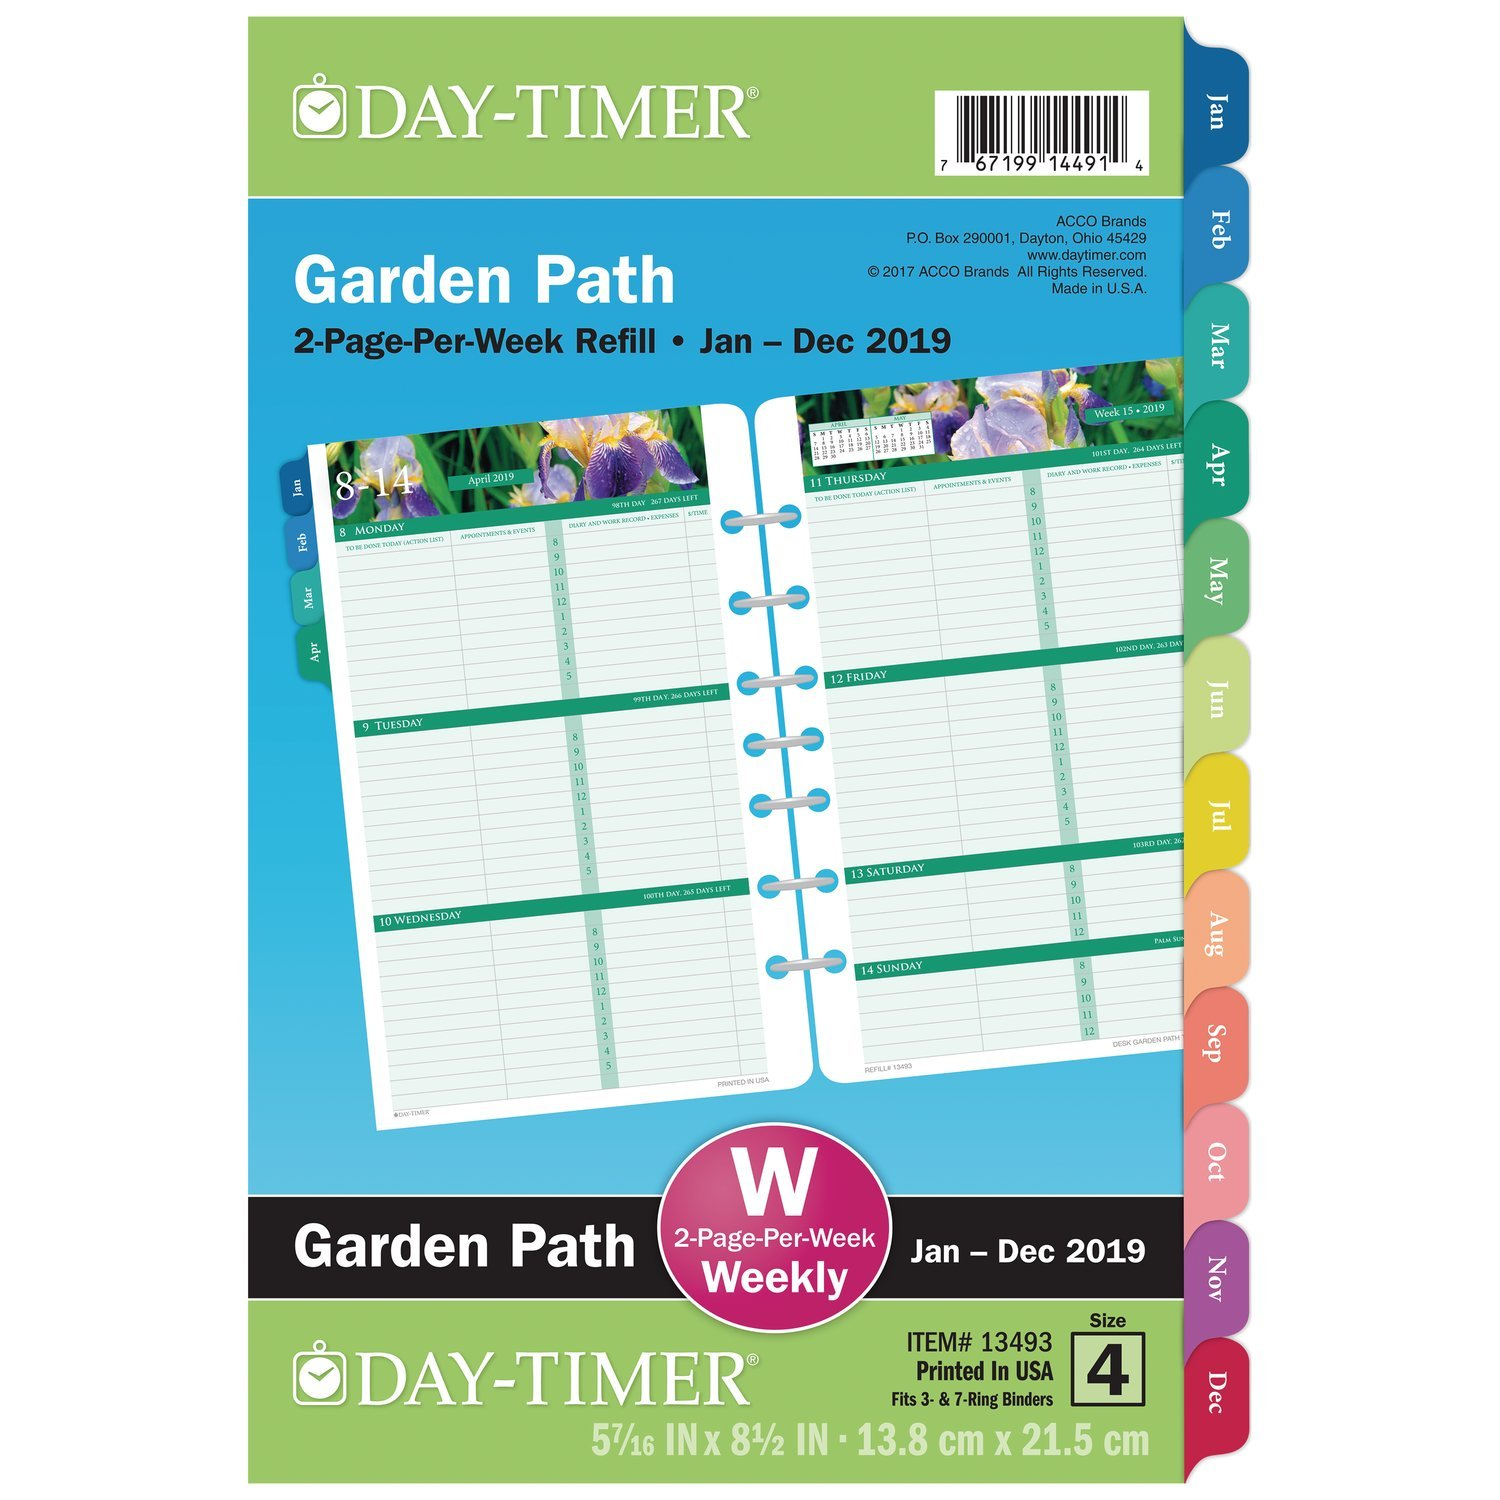 AT-A-GLANCE 2019 Weekly Planner Refill, 5-1/2'' x 8-1/2'', Desk Size 4, Loose Leaf, Two Pages Per Week, Garden Path (13493)